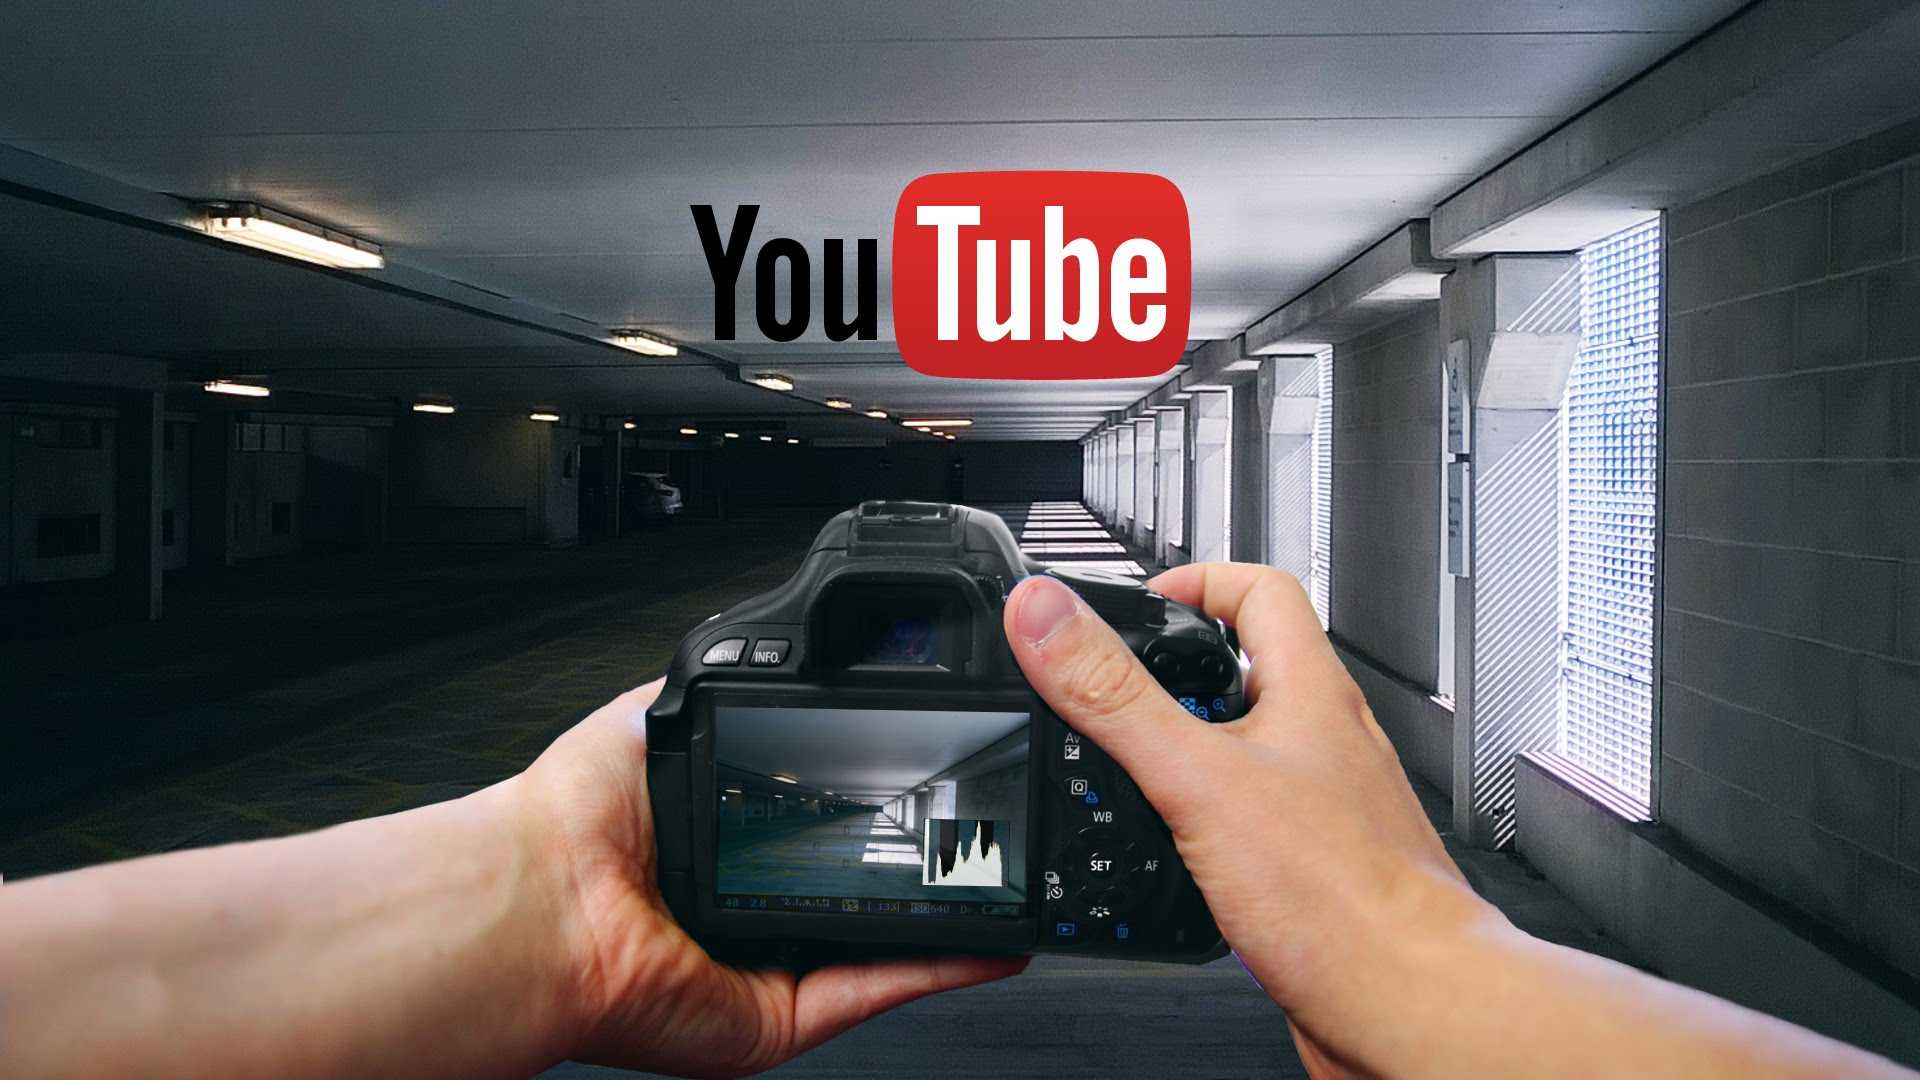 youtubes specialist video channels - HD1920×1080